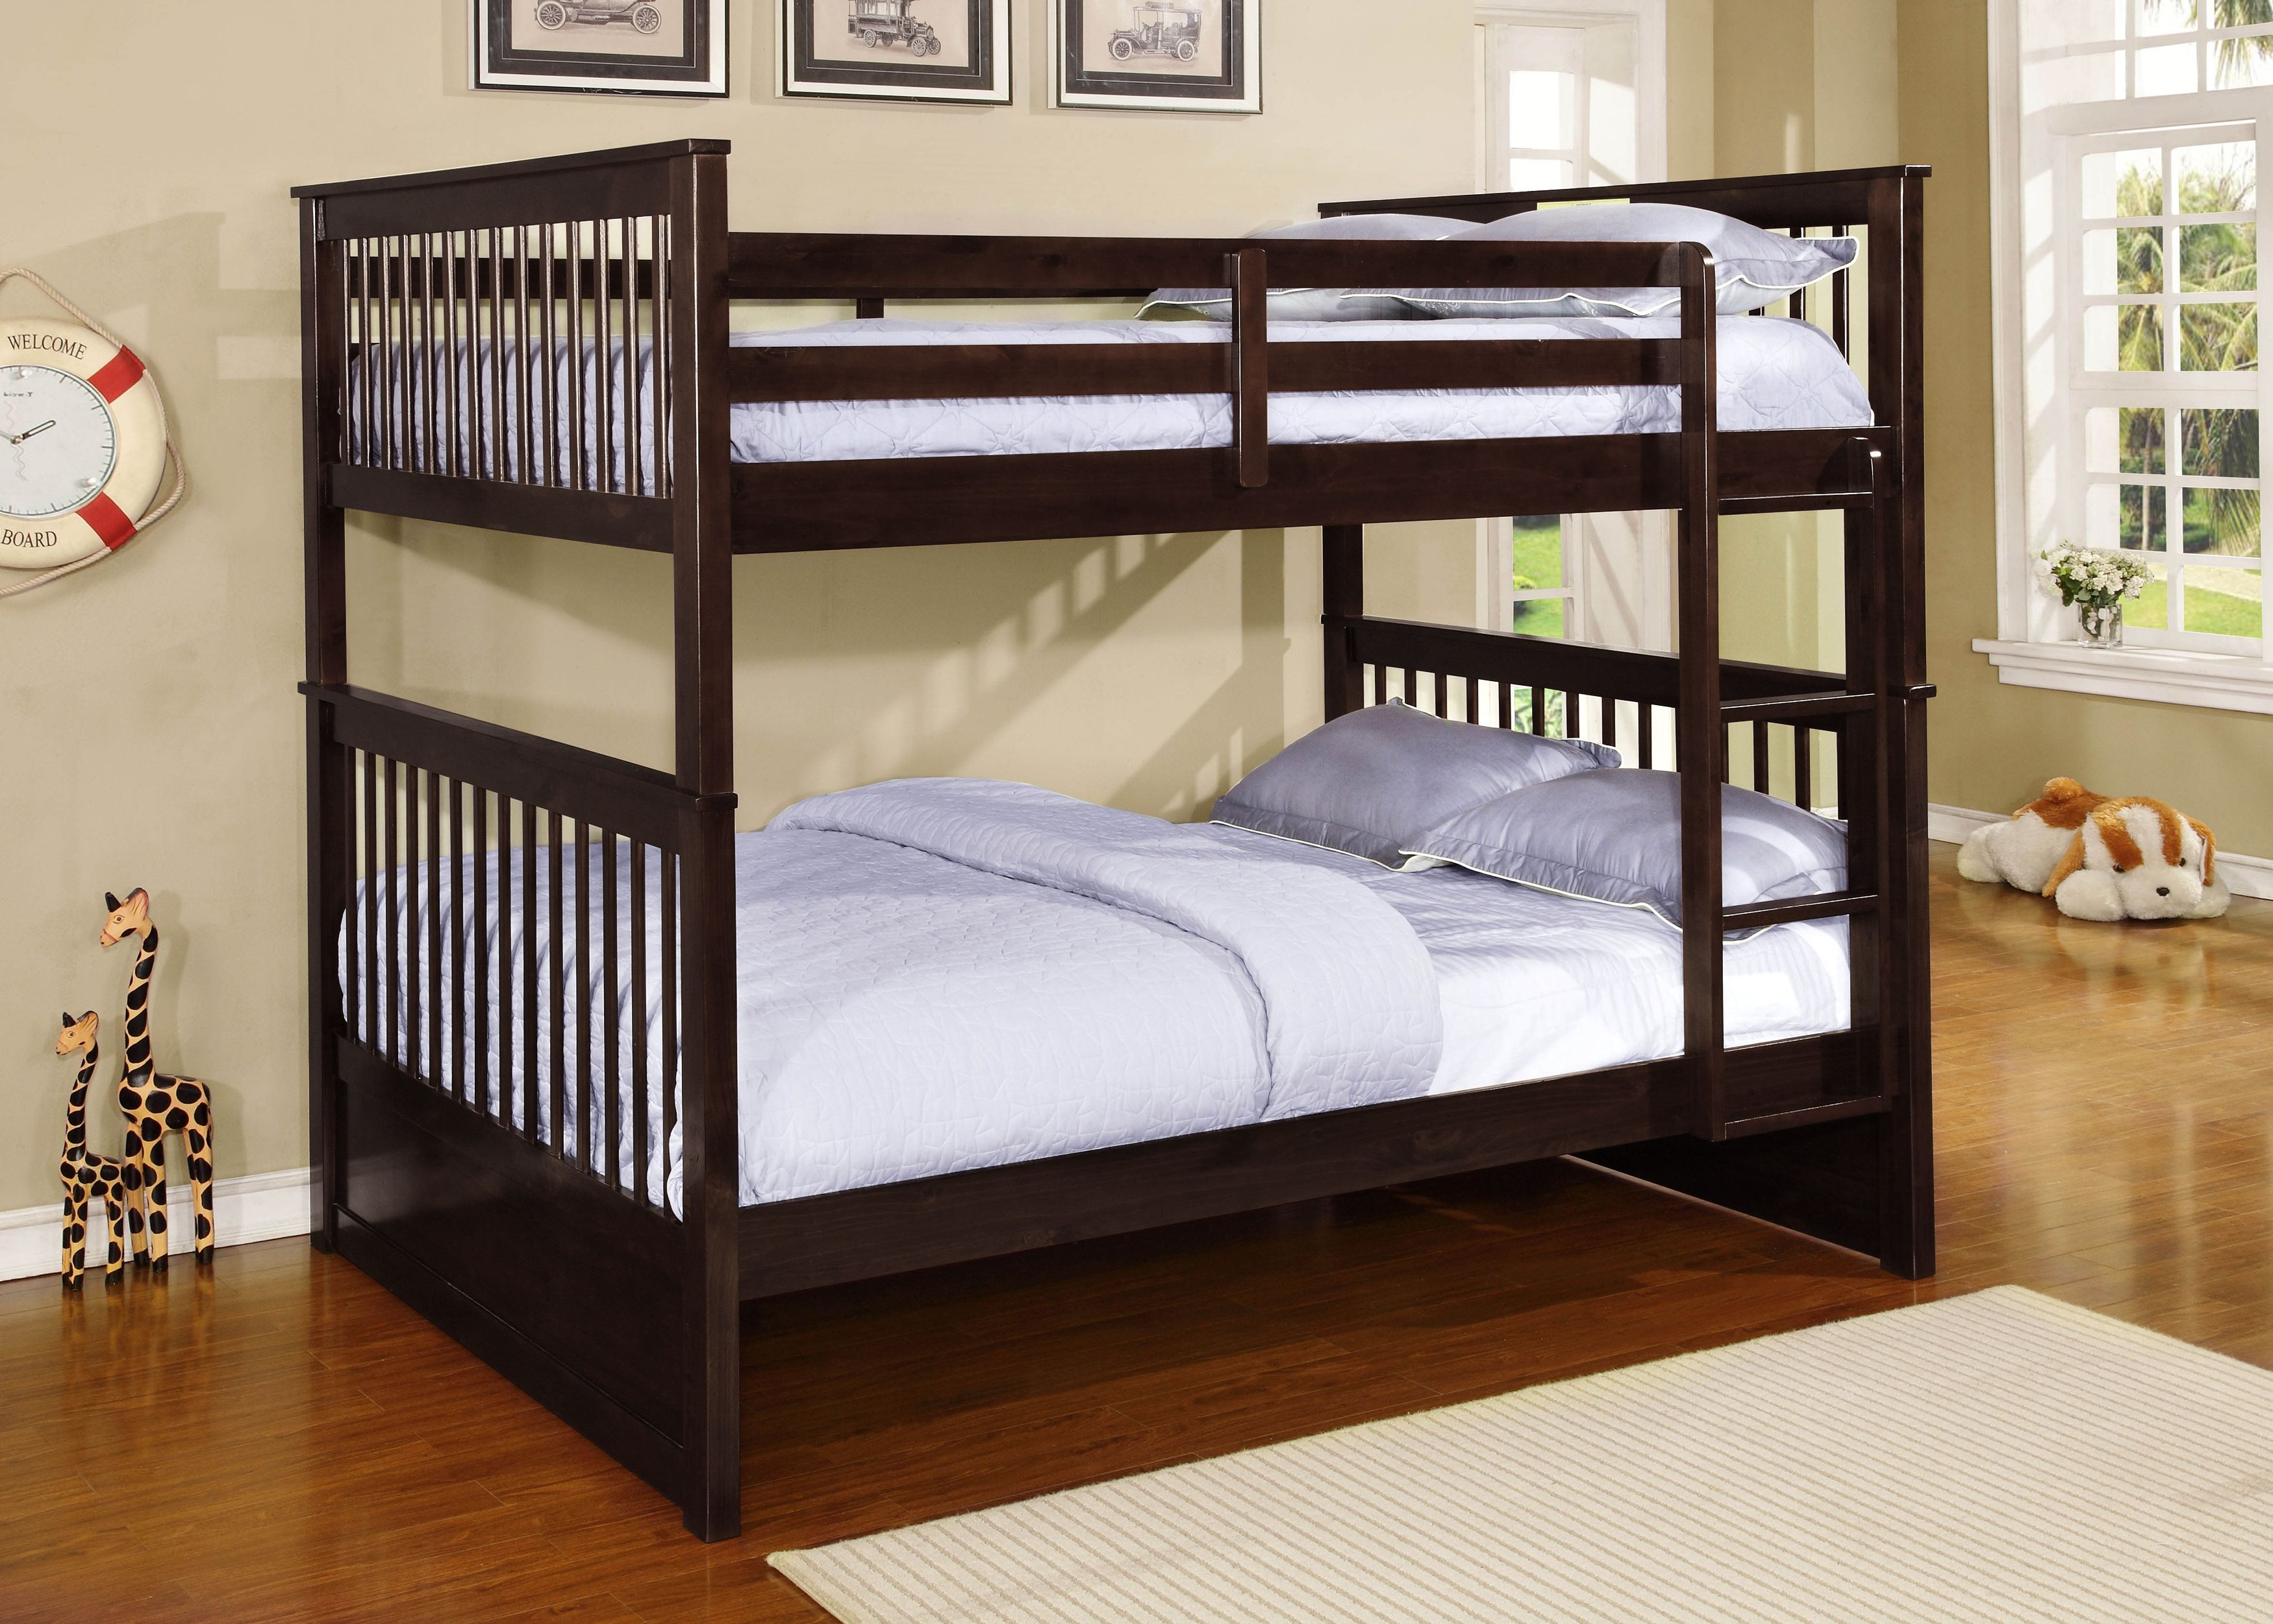 Full Size Espresso Finish Wood Slat Bunk Bed (Full Over Full Bunkbed) by unknown